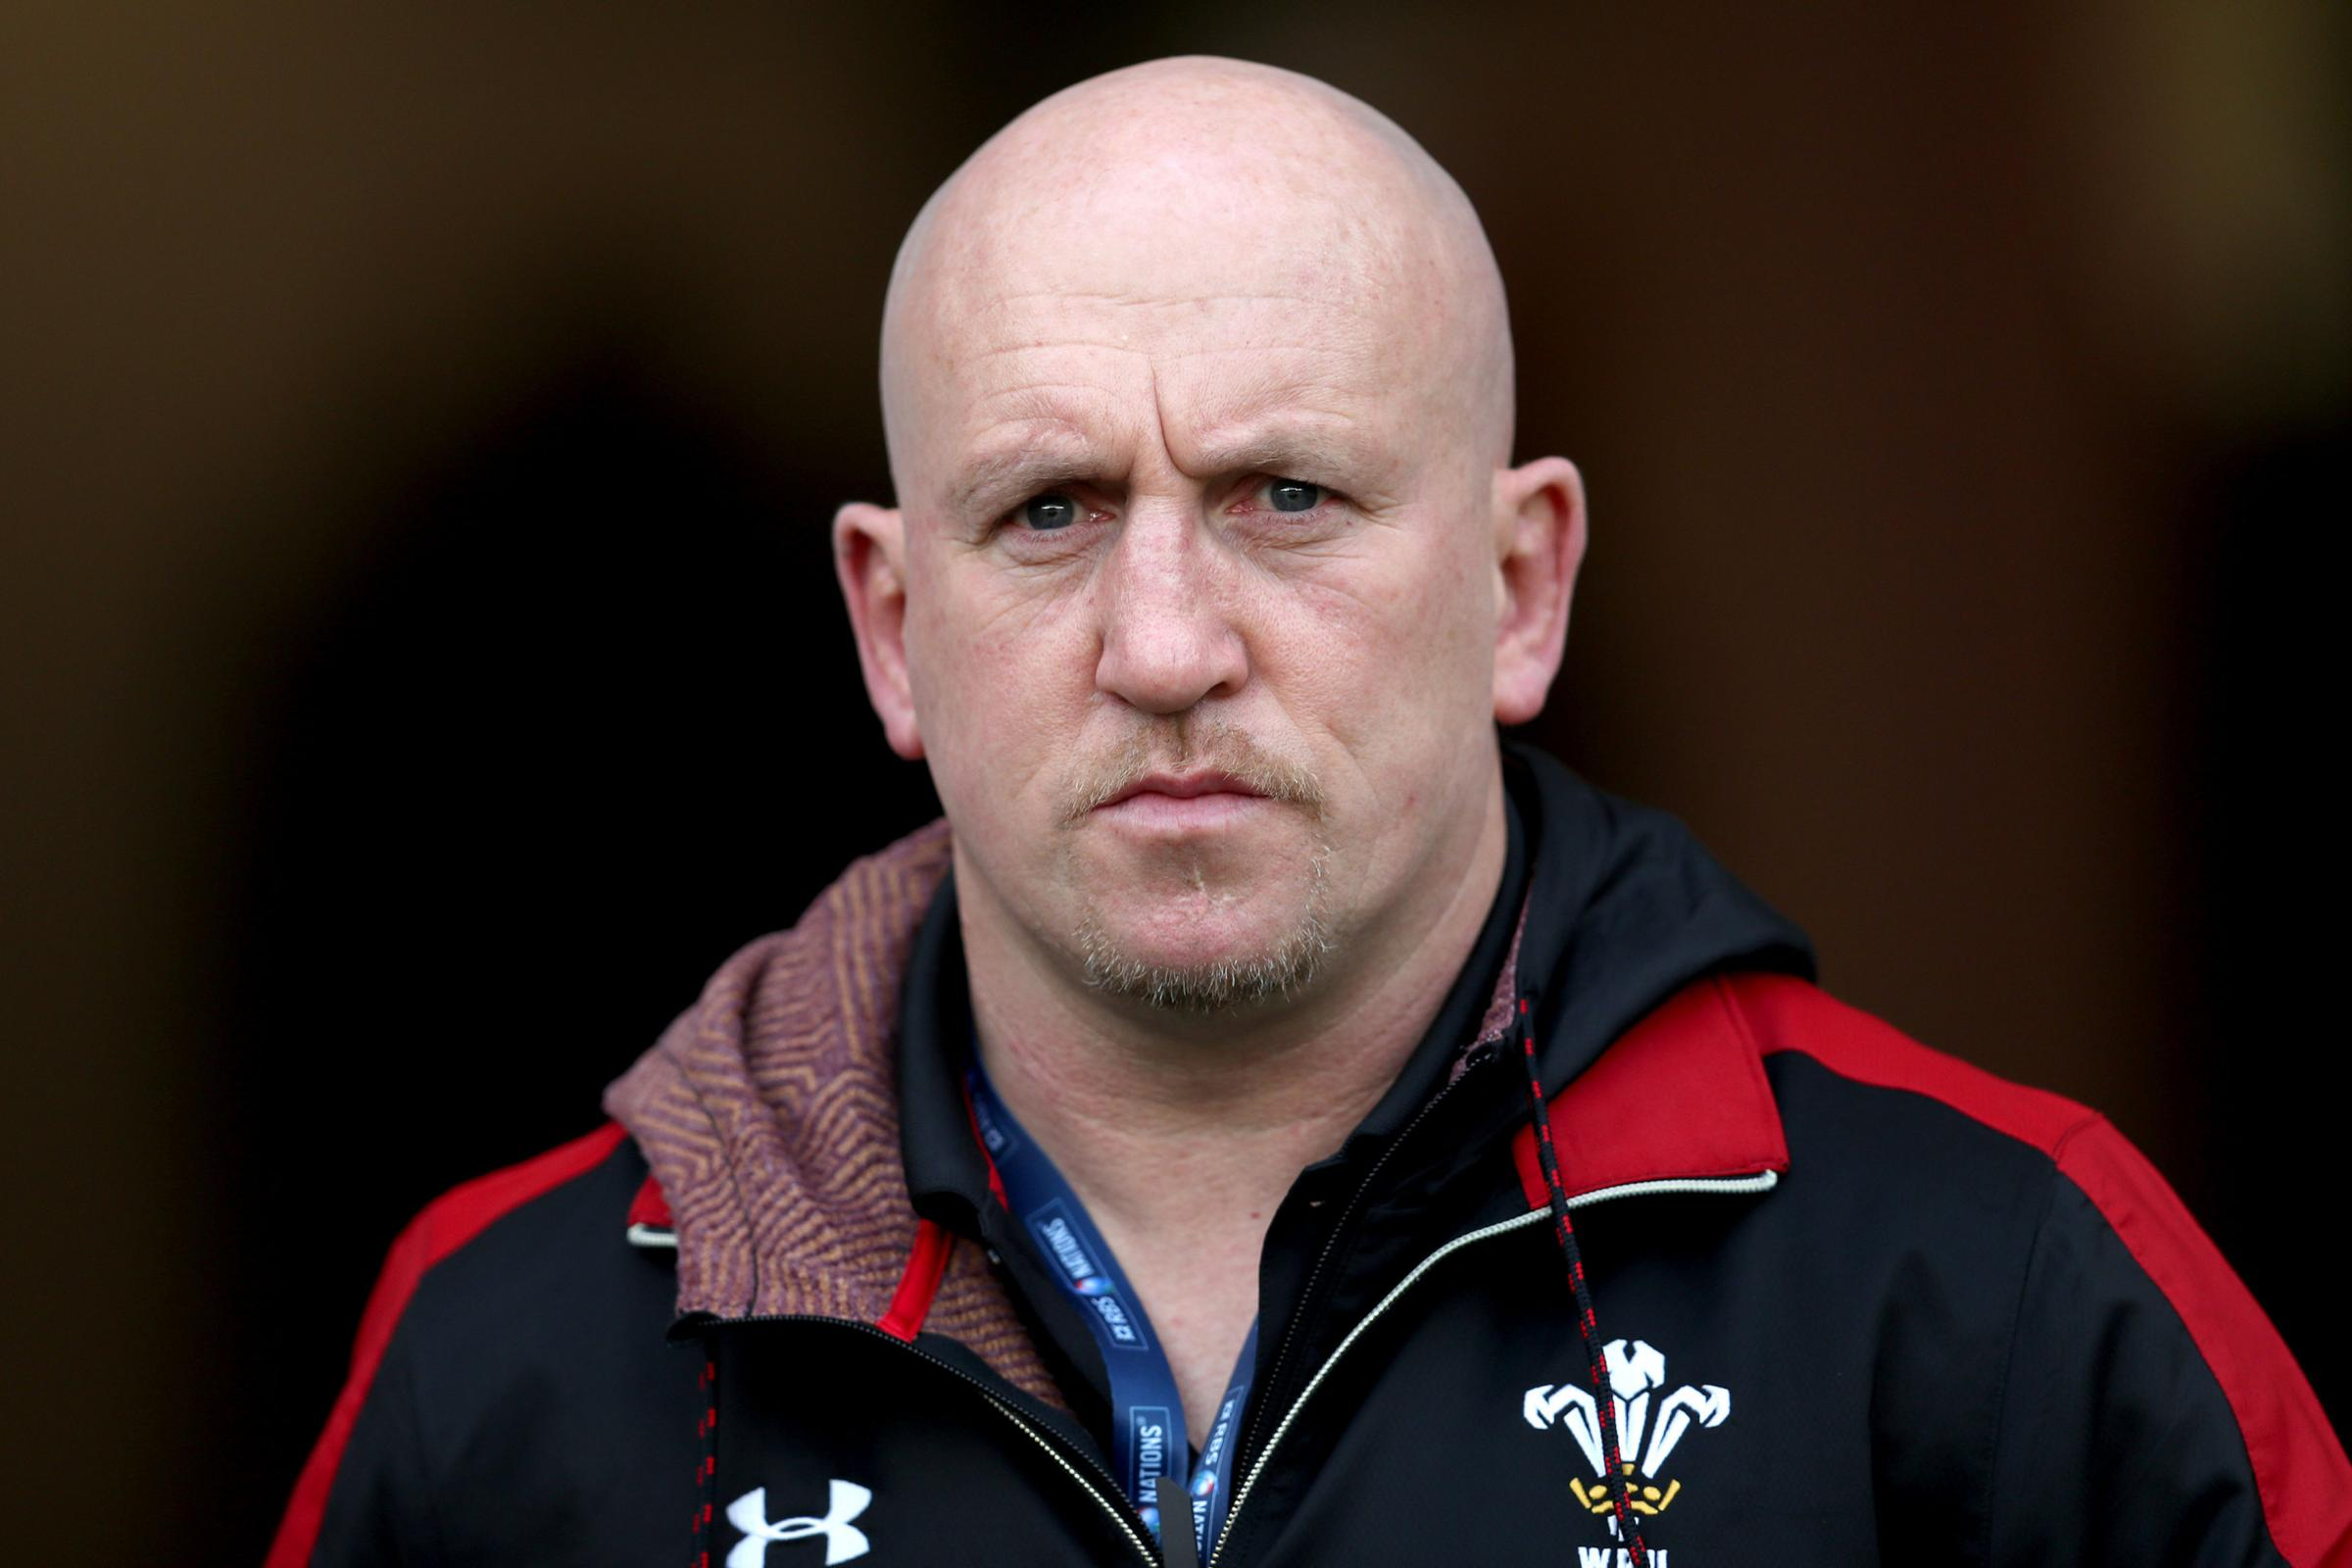 Wales coach, and former Bulls player, Shaun Edwards